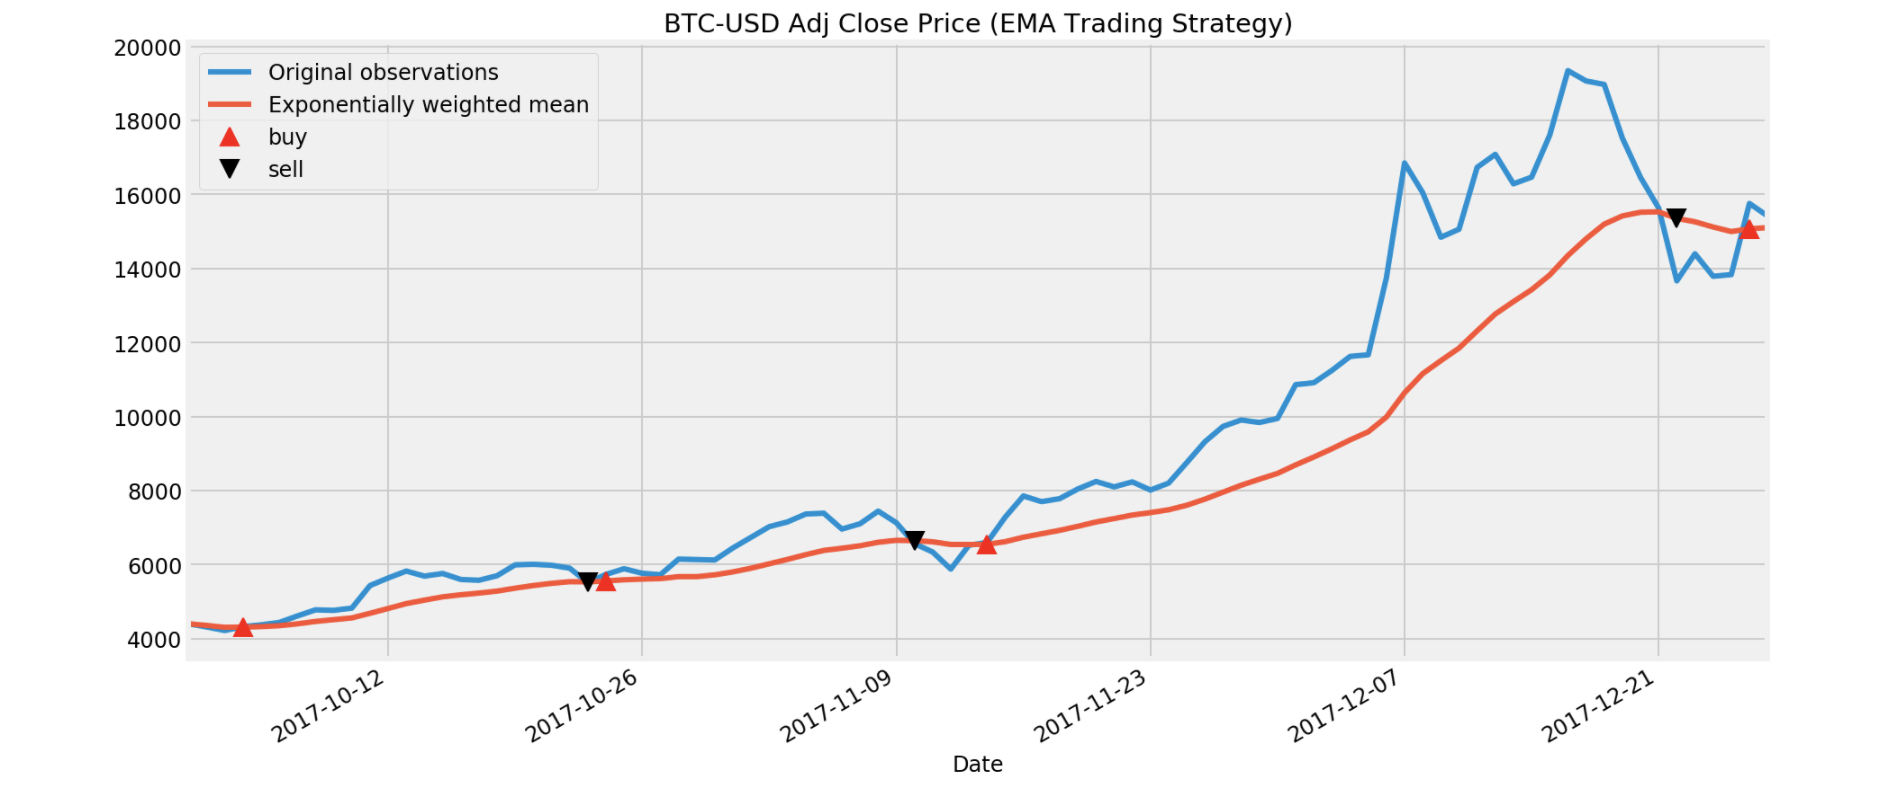 Basic Time Series Analysis and Trading Strategy with Bitcoin